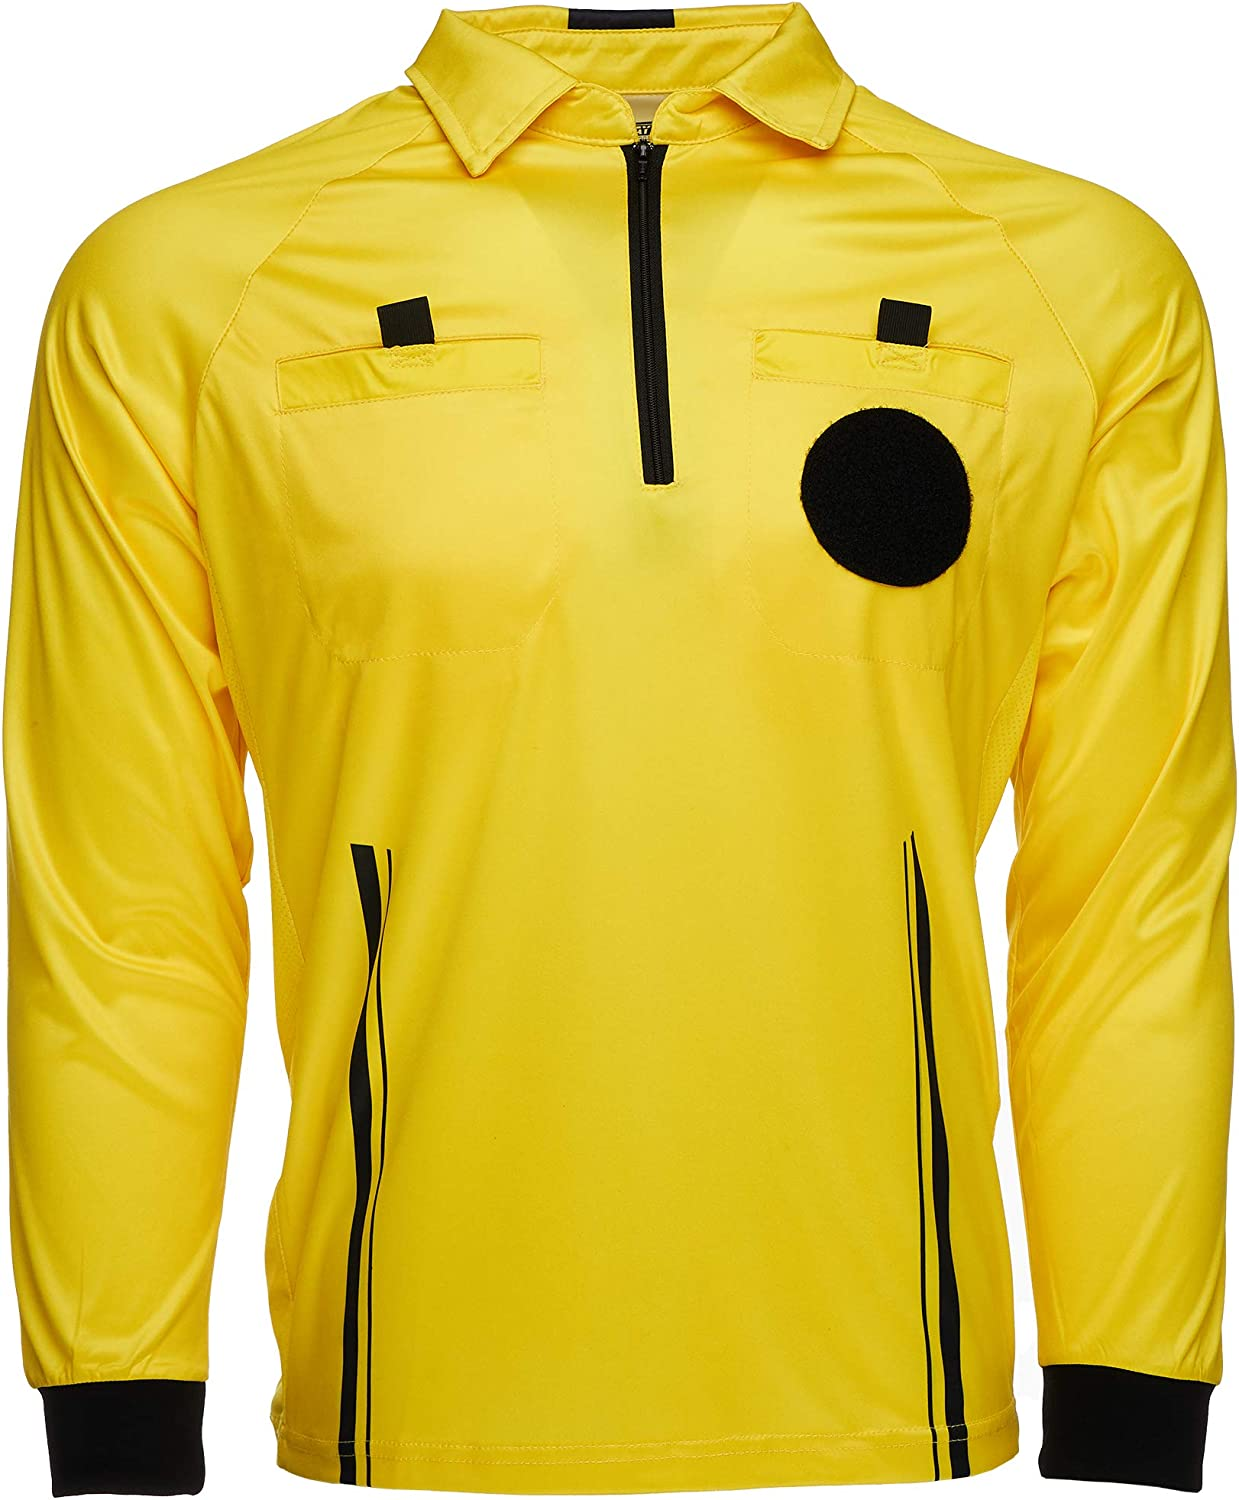 Murray's USSF Pro-Style Yellow long Sleeve Soccer Referee Jersey